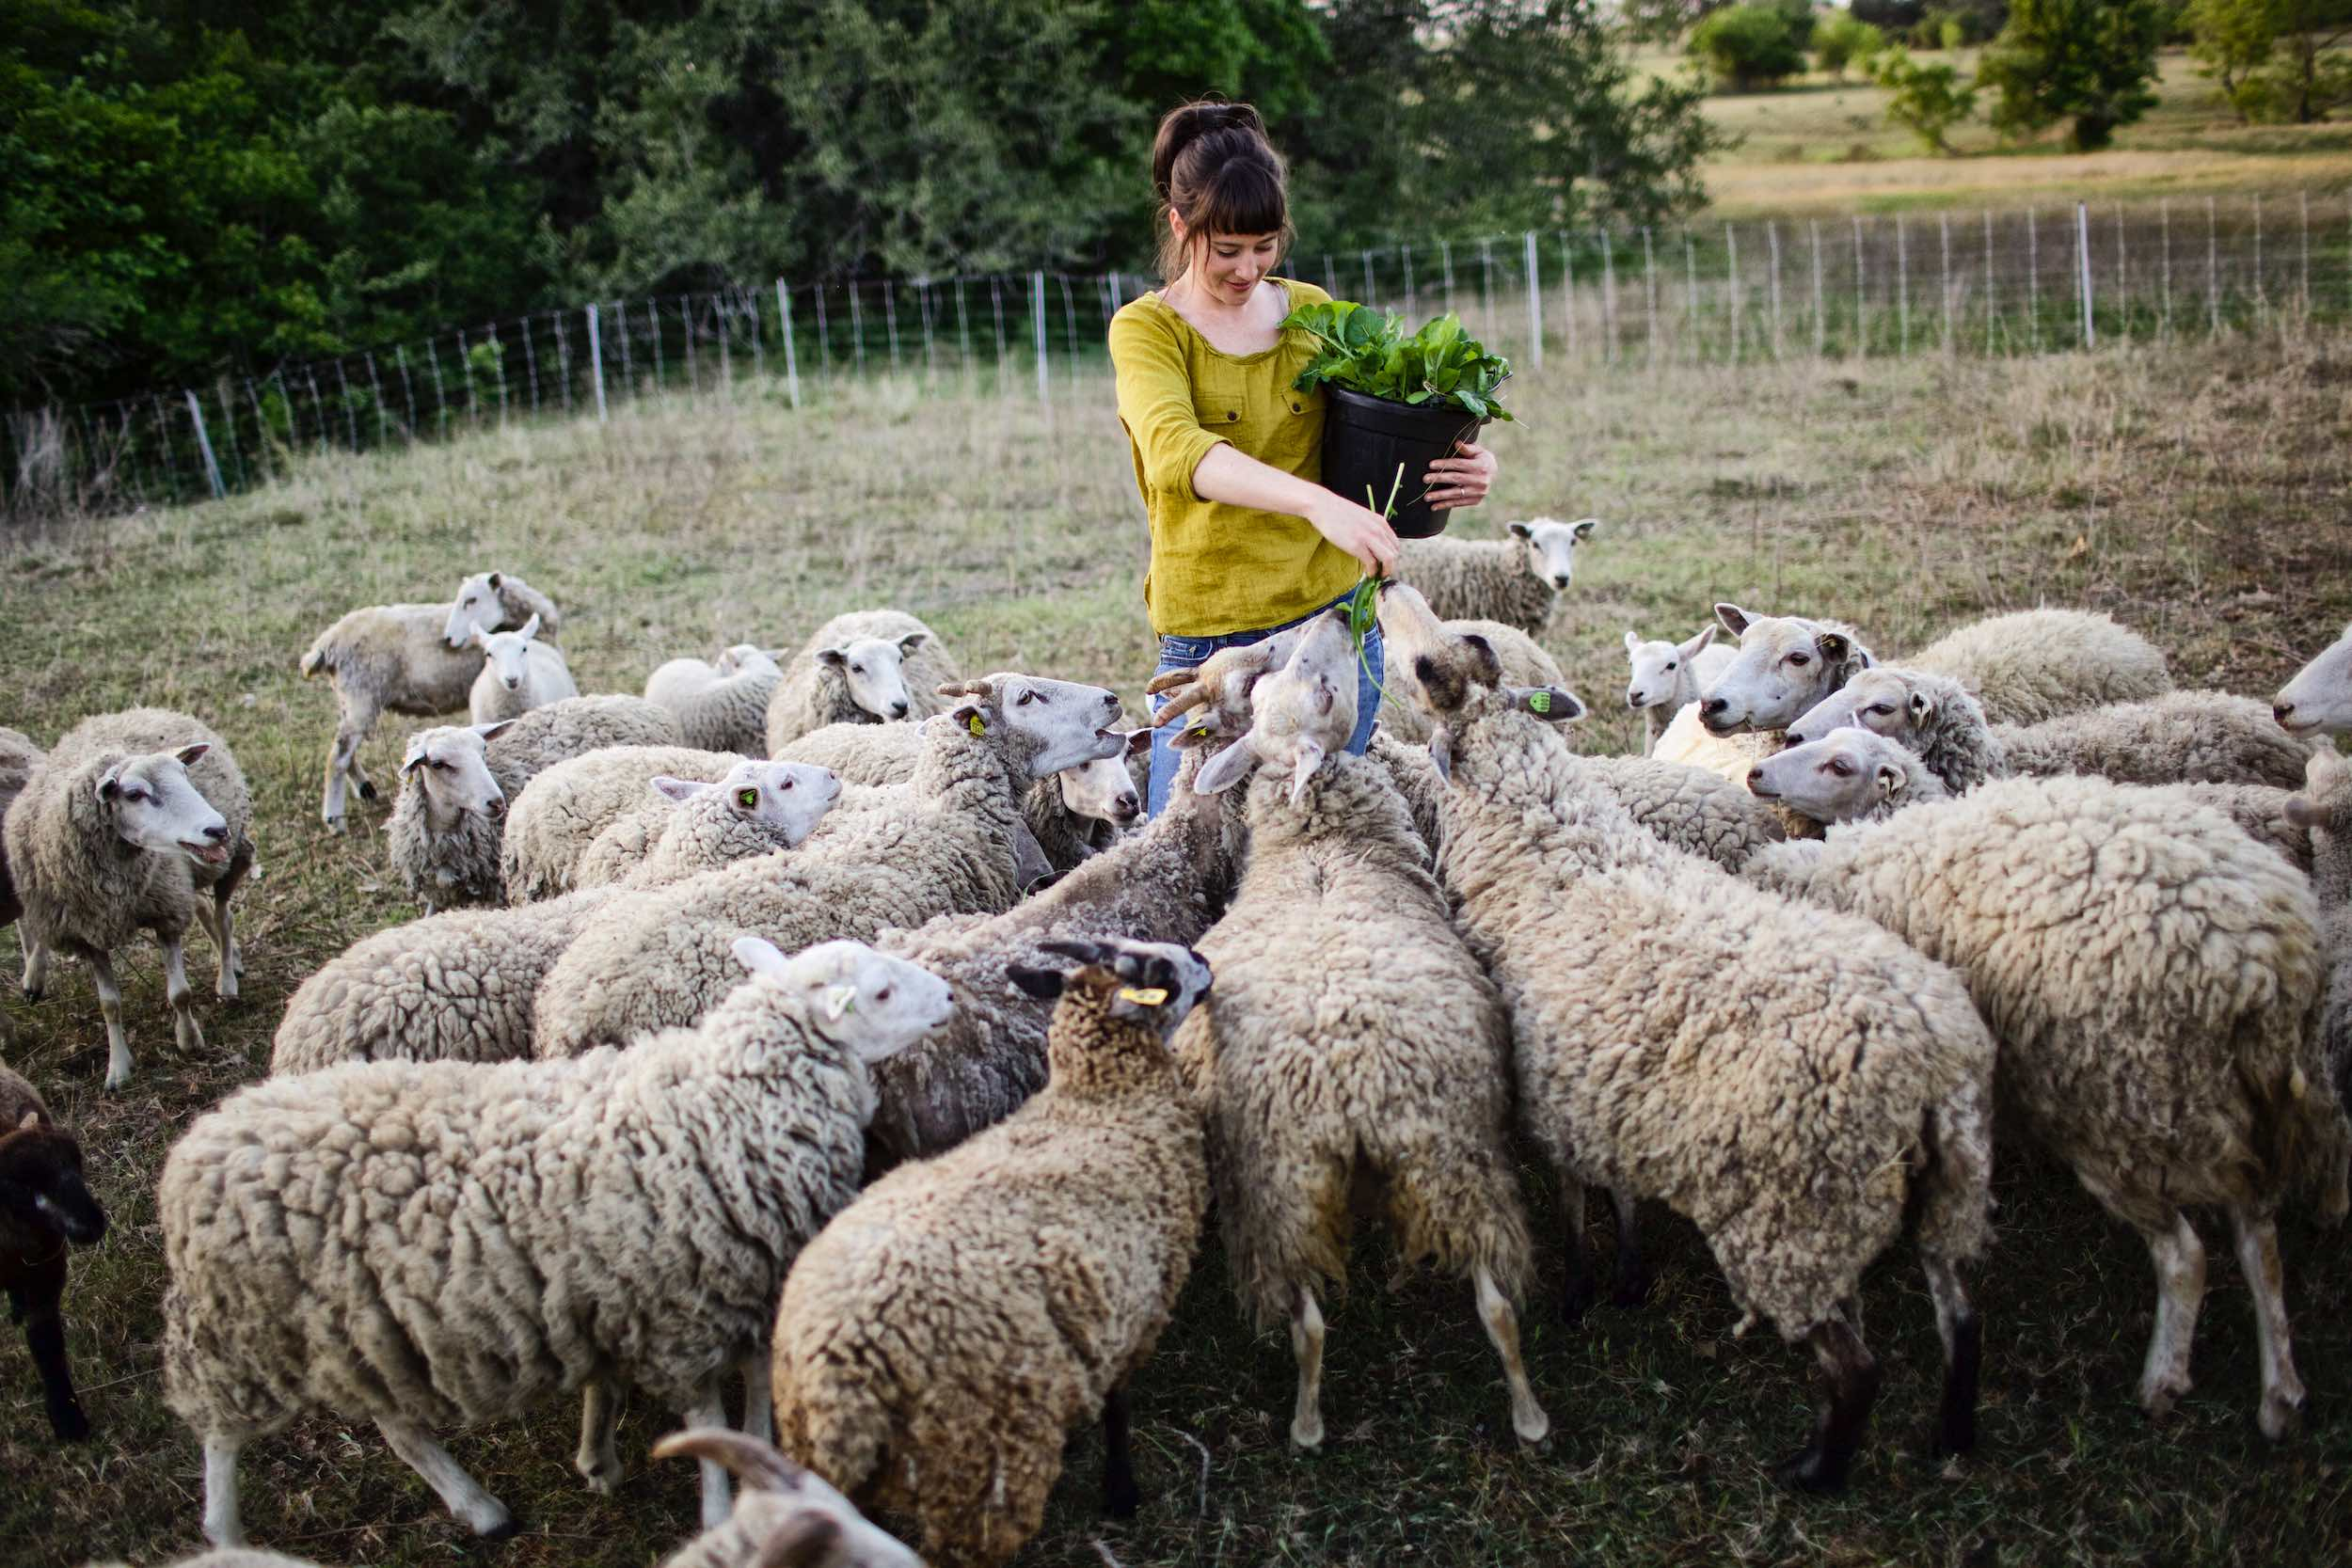 Jody Horton Photography - Farmer feeding greens to sheep.